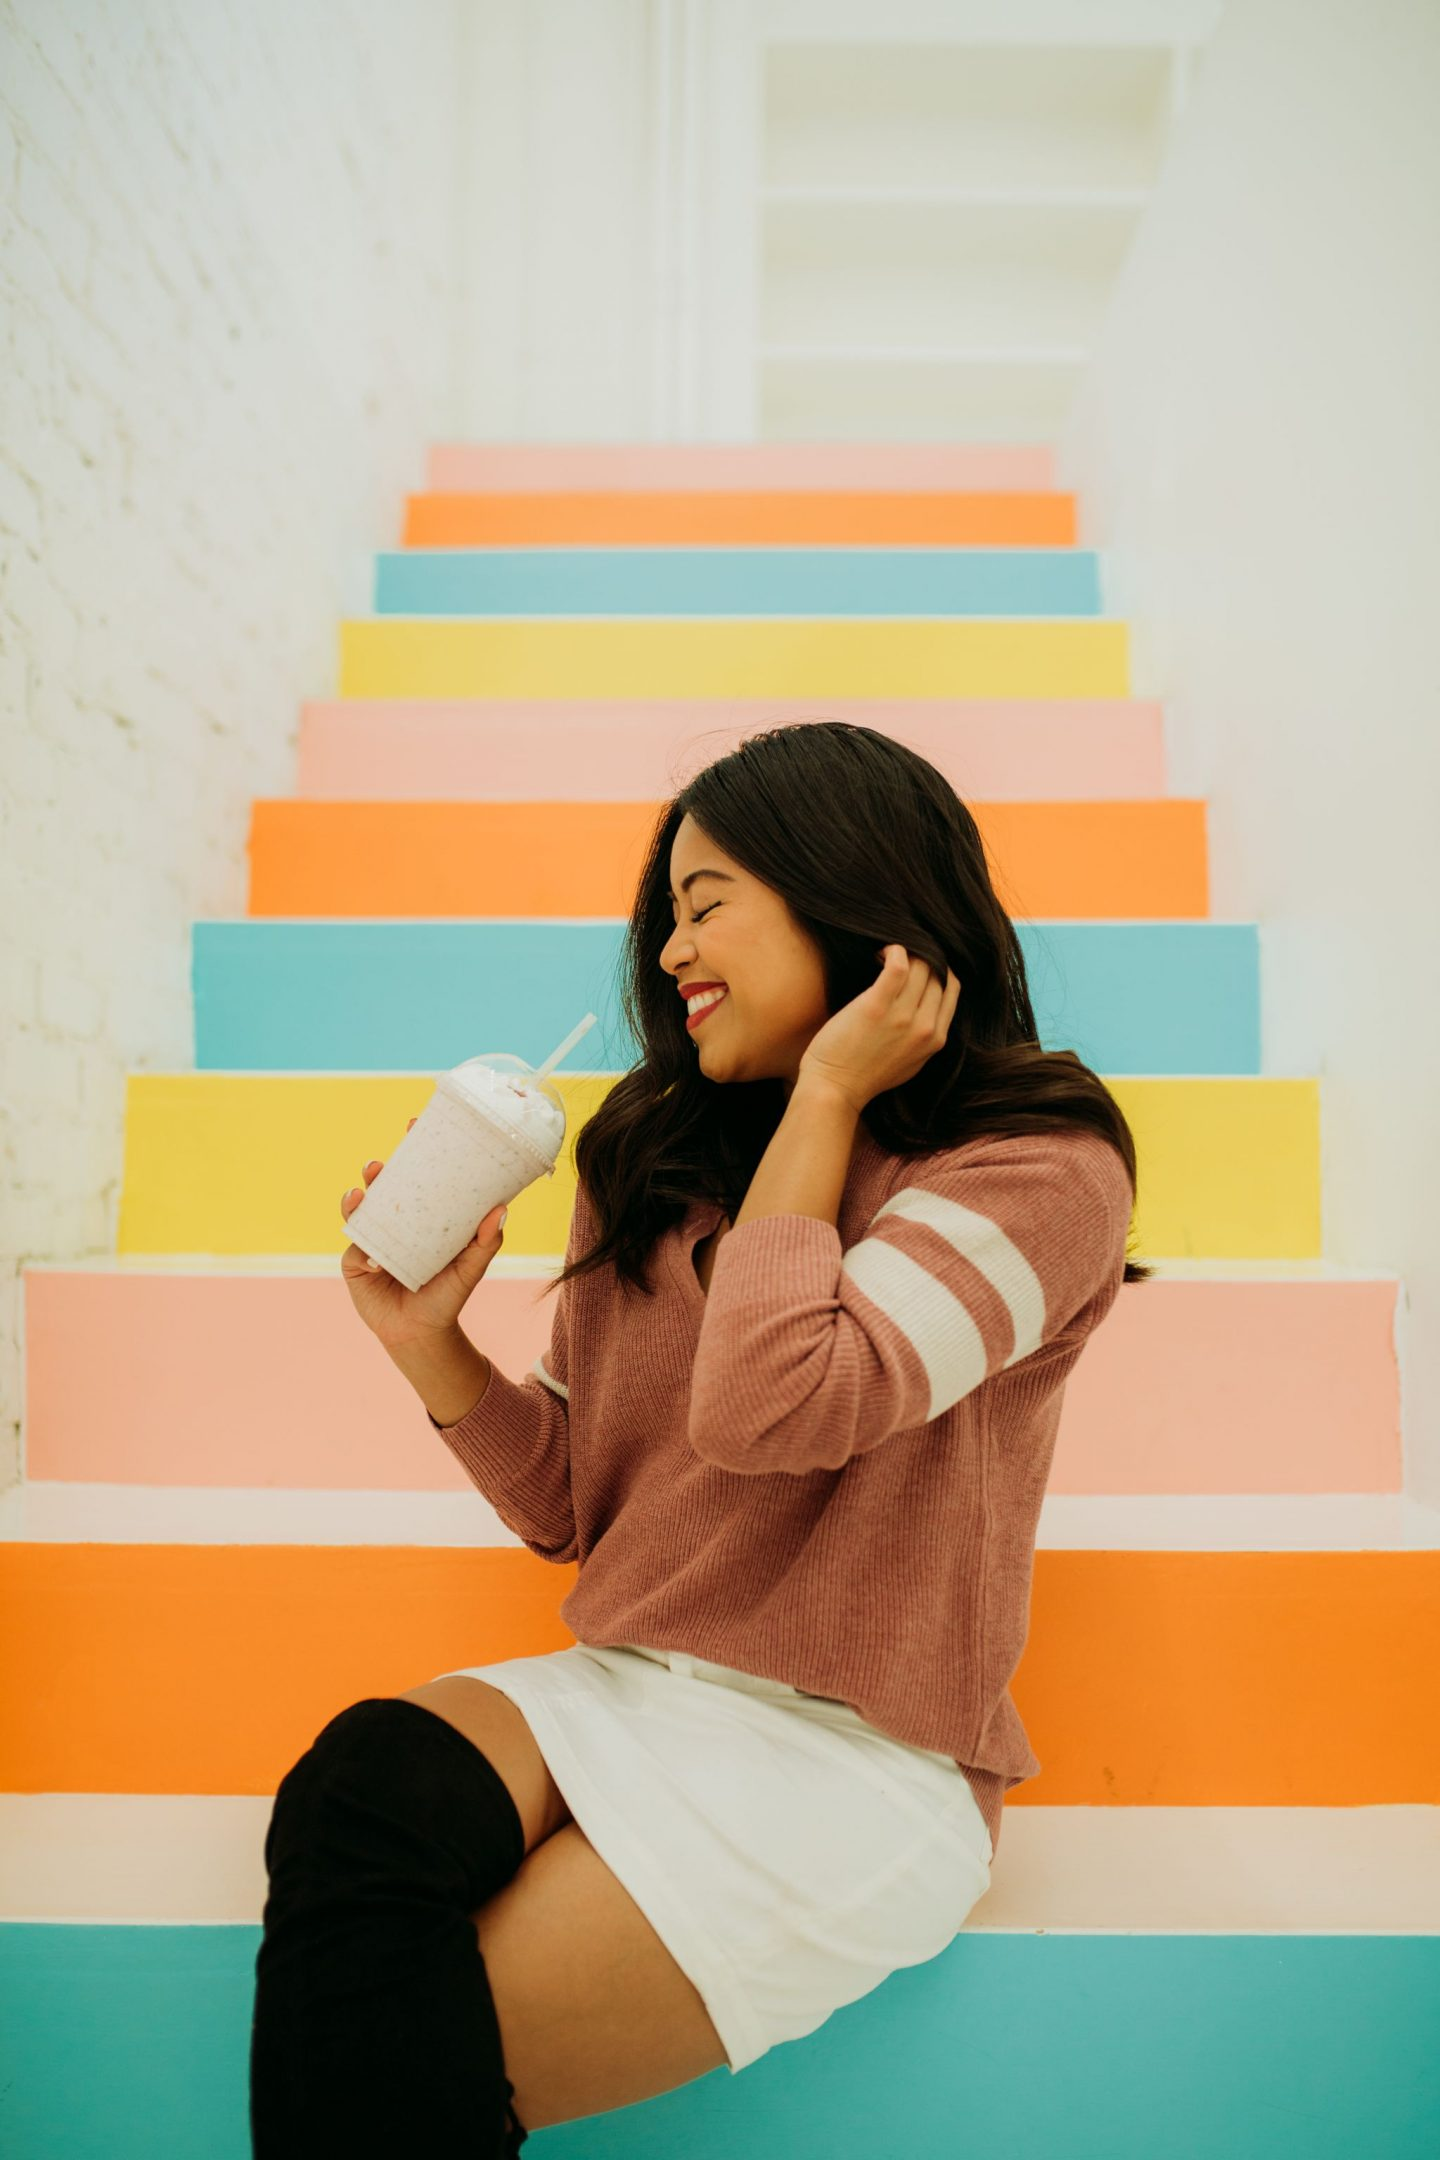 Fall Seasonal Flavors – molly moons flavors – molly moons seasonal scooper – ice cream downtown seattle – molly moons Wallingford – molly moons capitol hill – molly moons university village – seattle ice cream – homemade ice cream – best ice cream shops in seattle - rainbow stairs